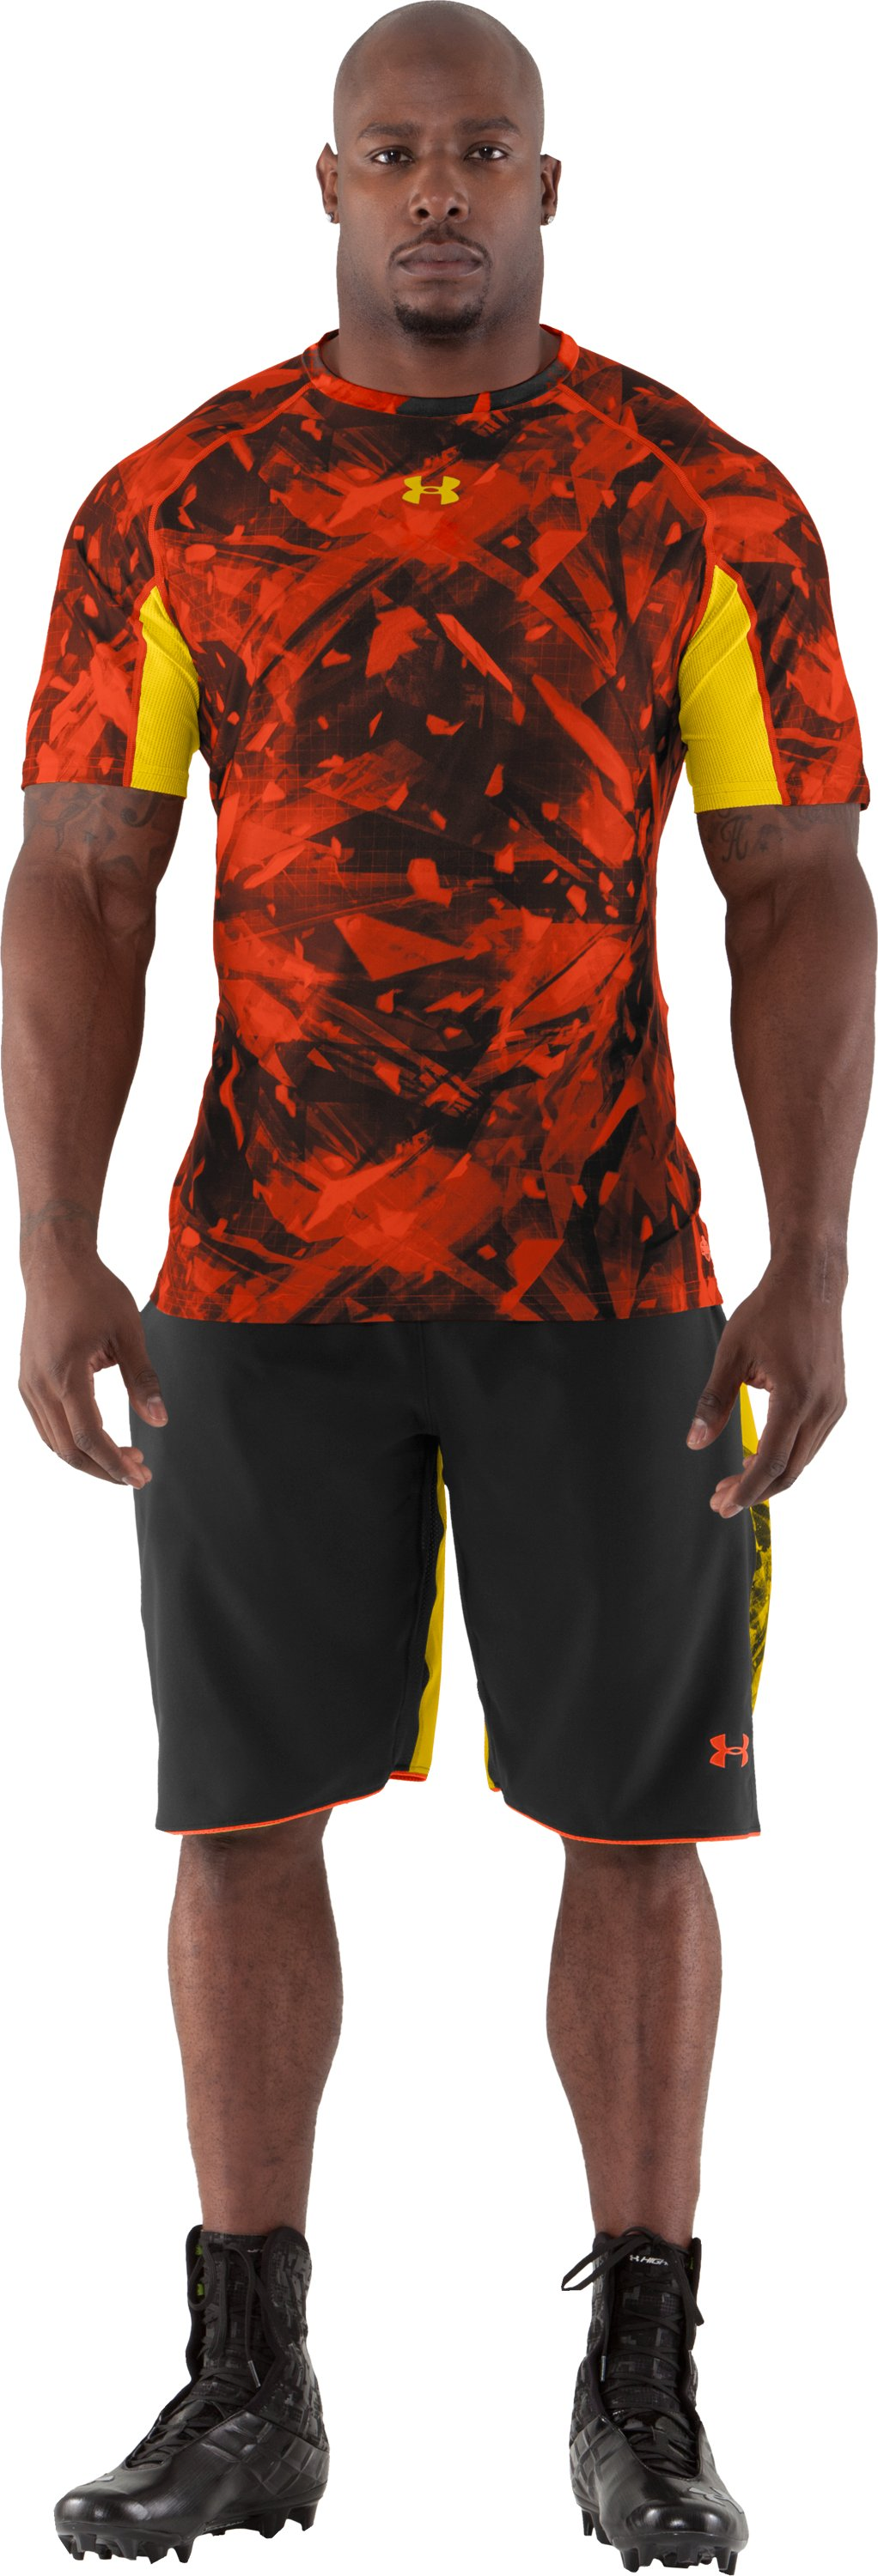 Men's NFL Combine Authentic Fitted Short Sleeve, Explosive